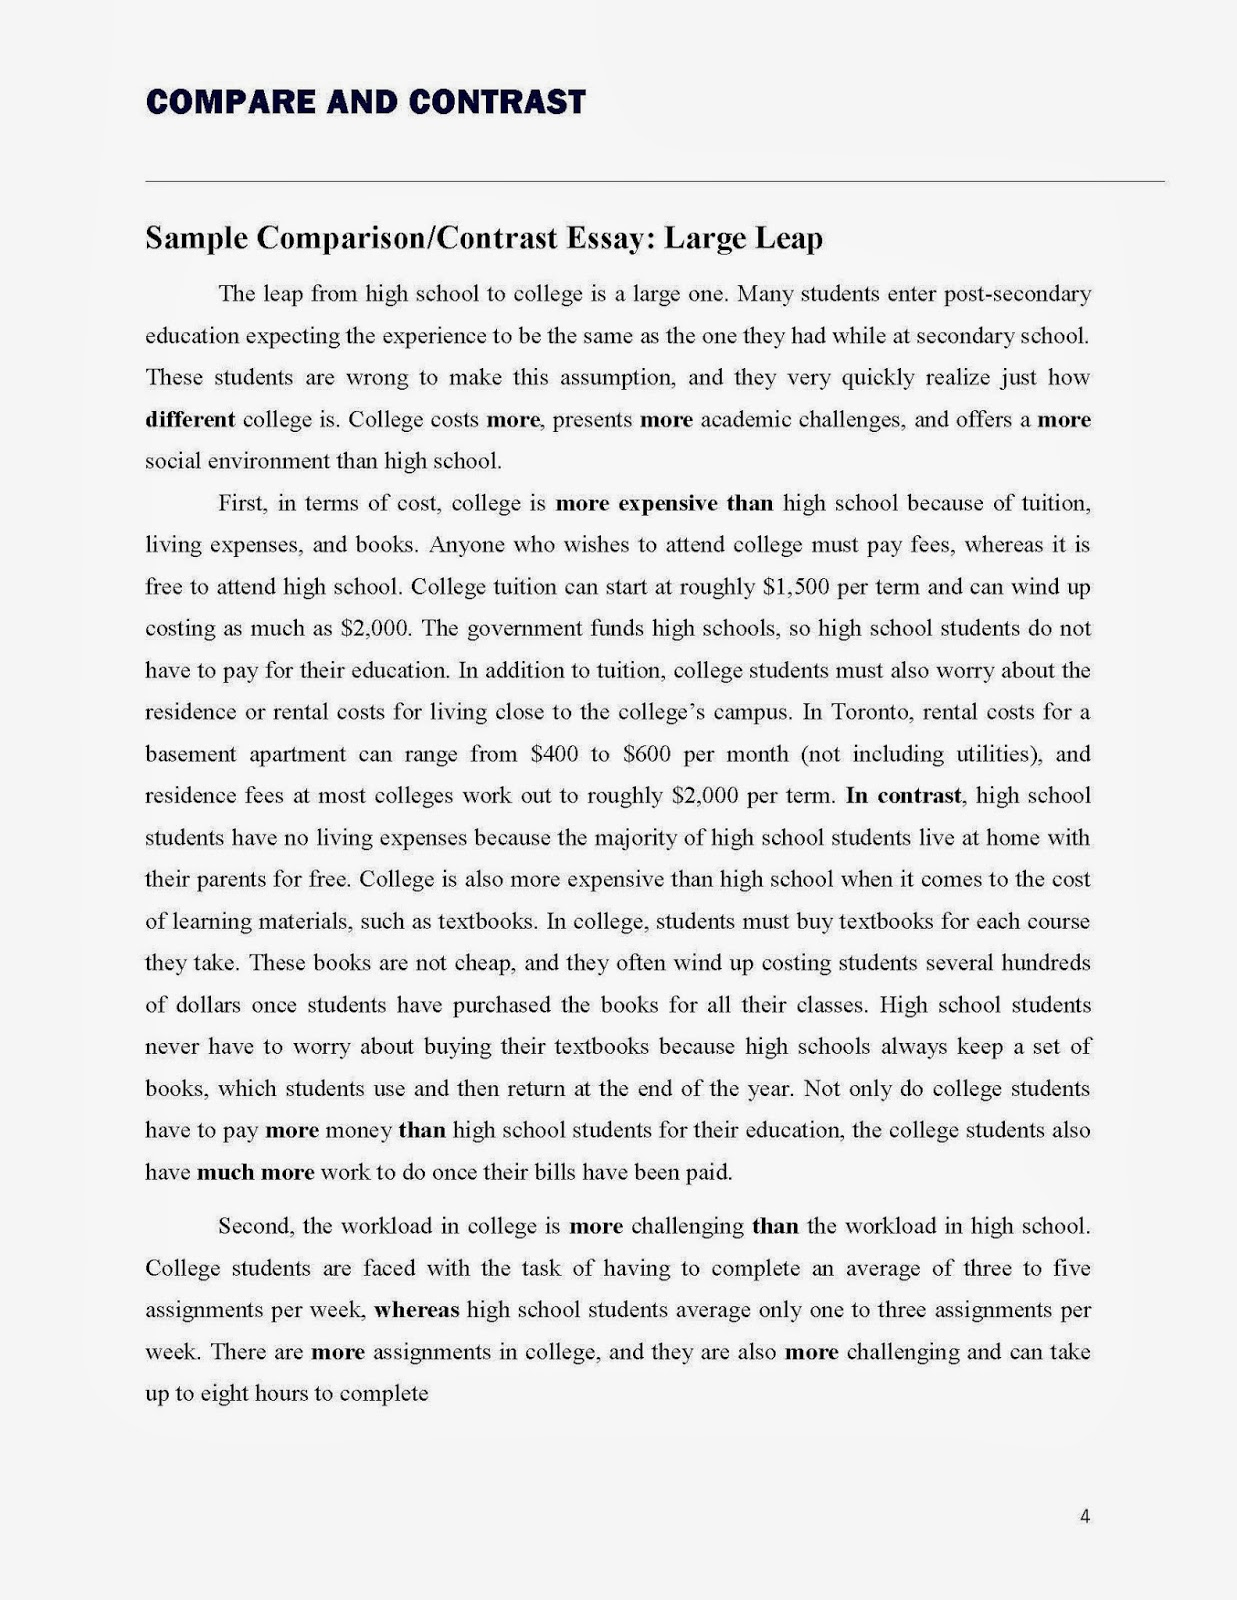 comparative essay subjects Looking for interesting compare and contrast essay topics these 140 fresh compare and contrast topics will wow your teacher.